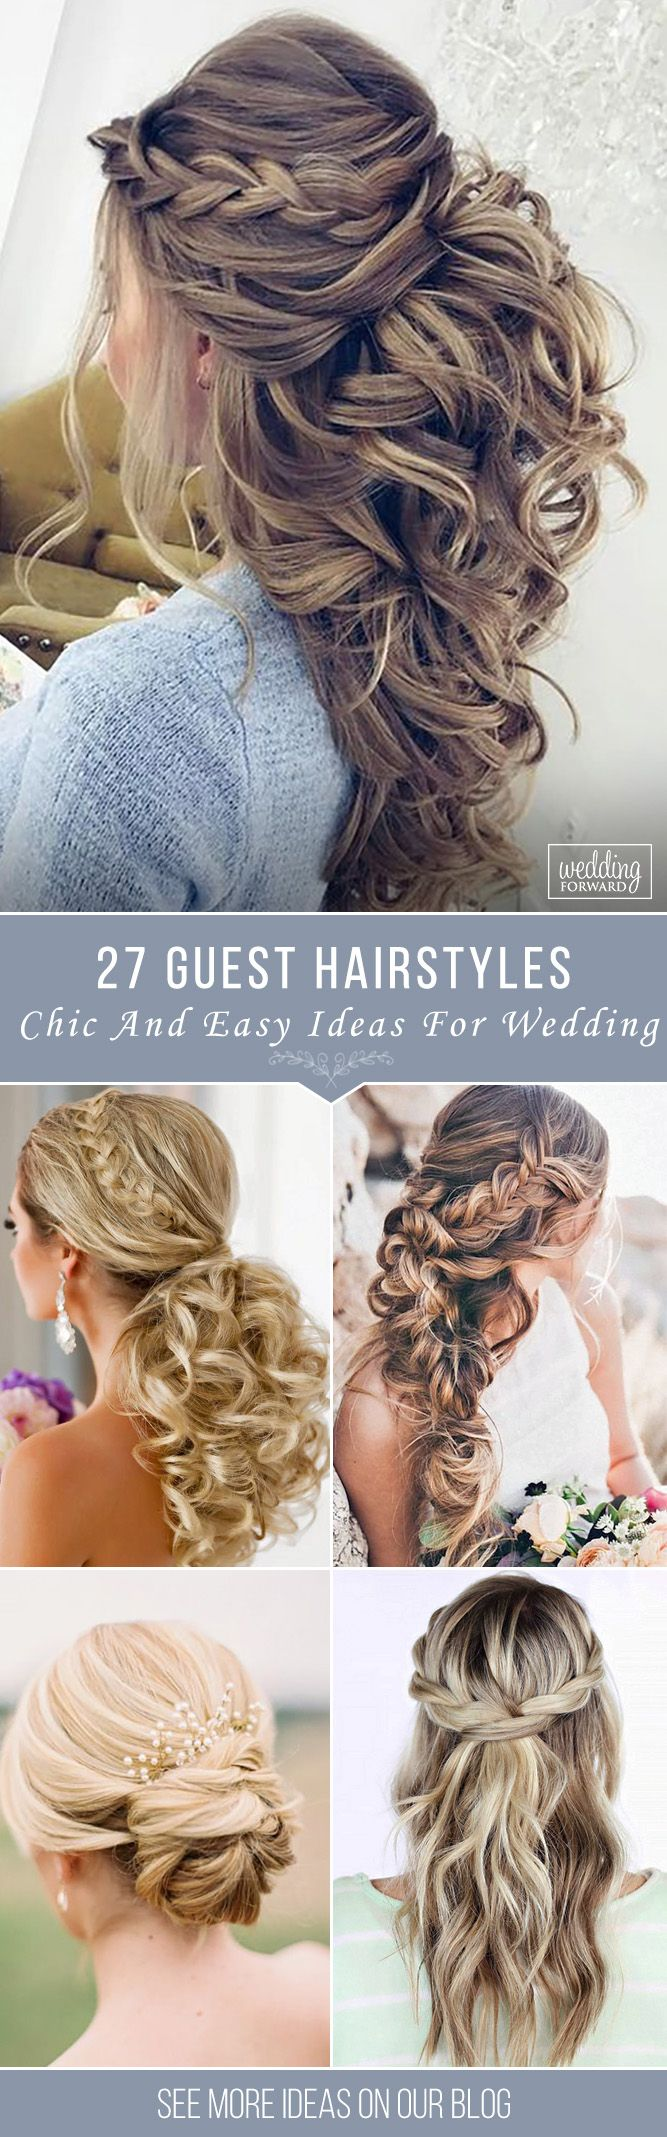 Wedding Guest Hairstyles 42 The Most Beautiful Ideas Wedding Forward Hair Styles Guest Hair Wedding Guest Hairstyles